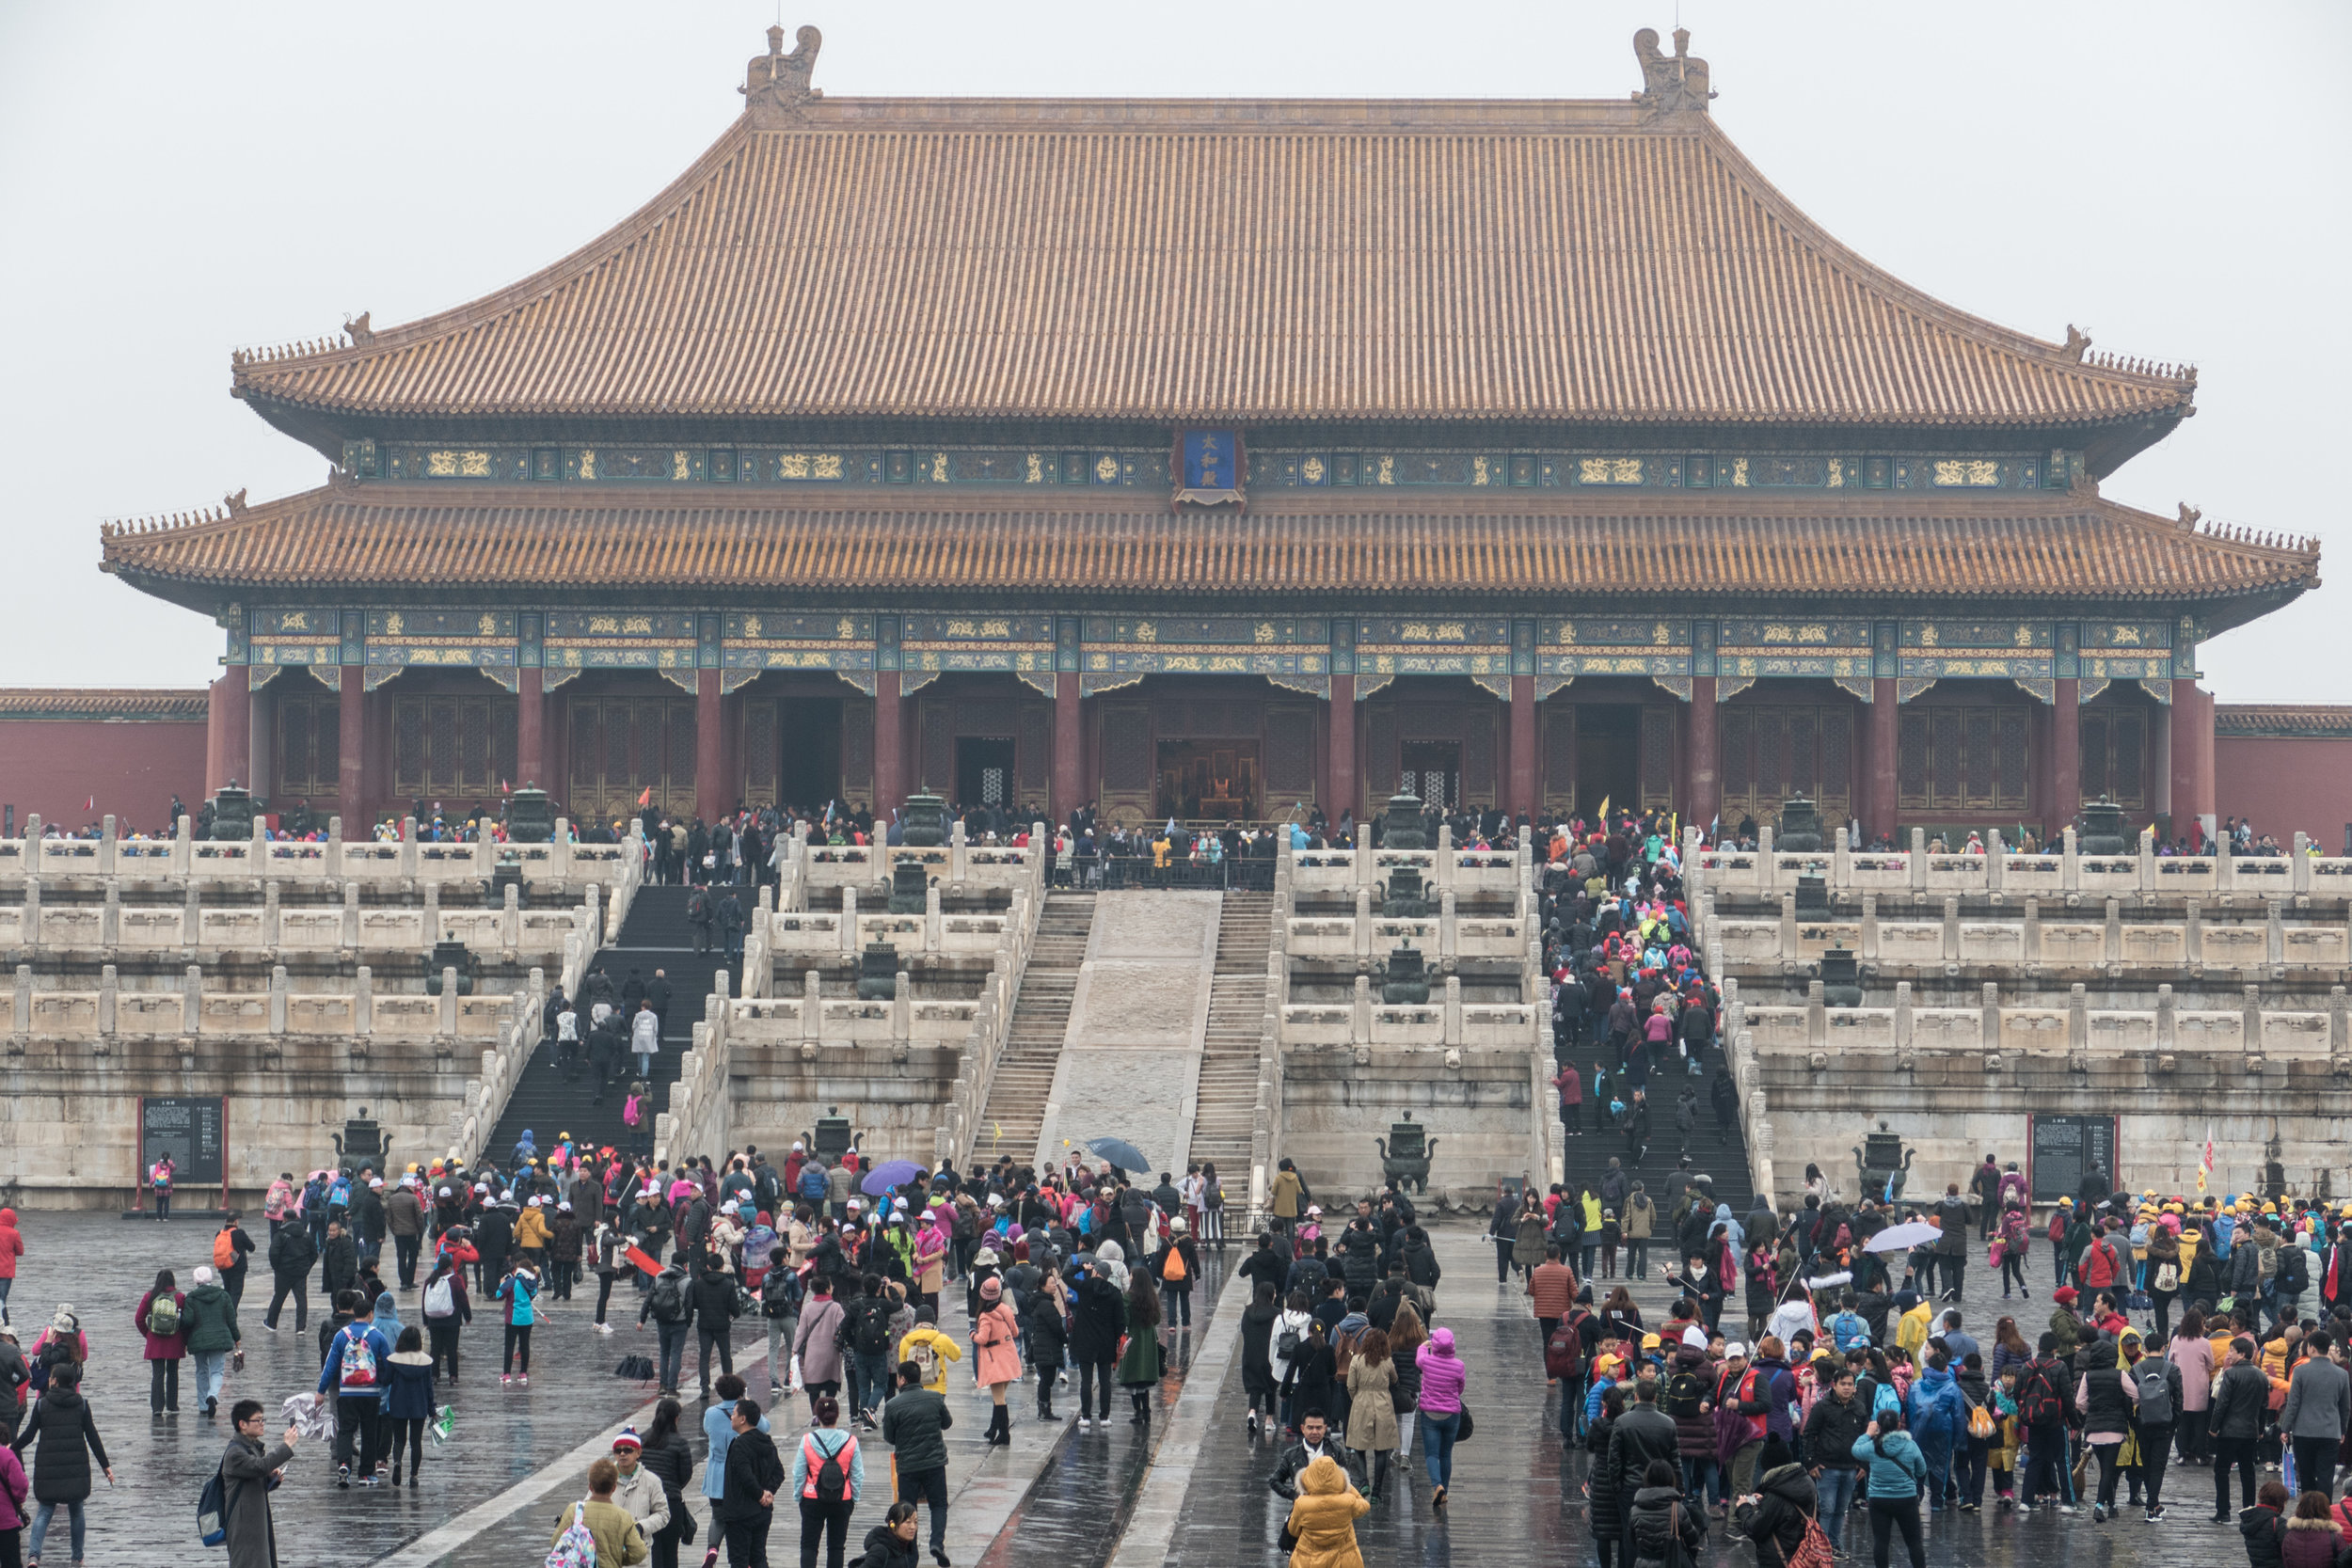 Despite the rain, there were large crowds at the Forbidden City